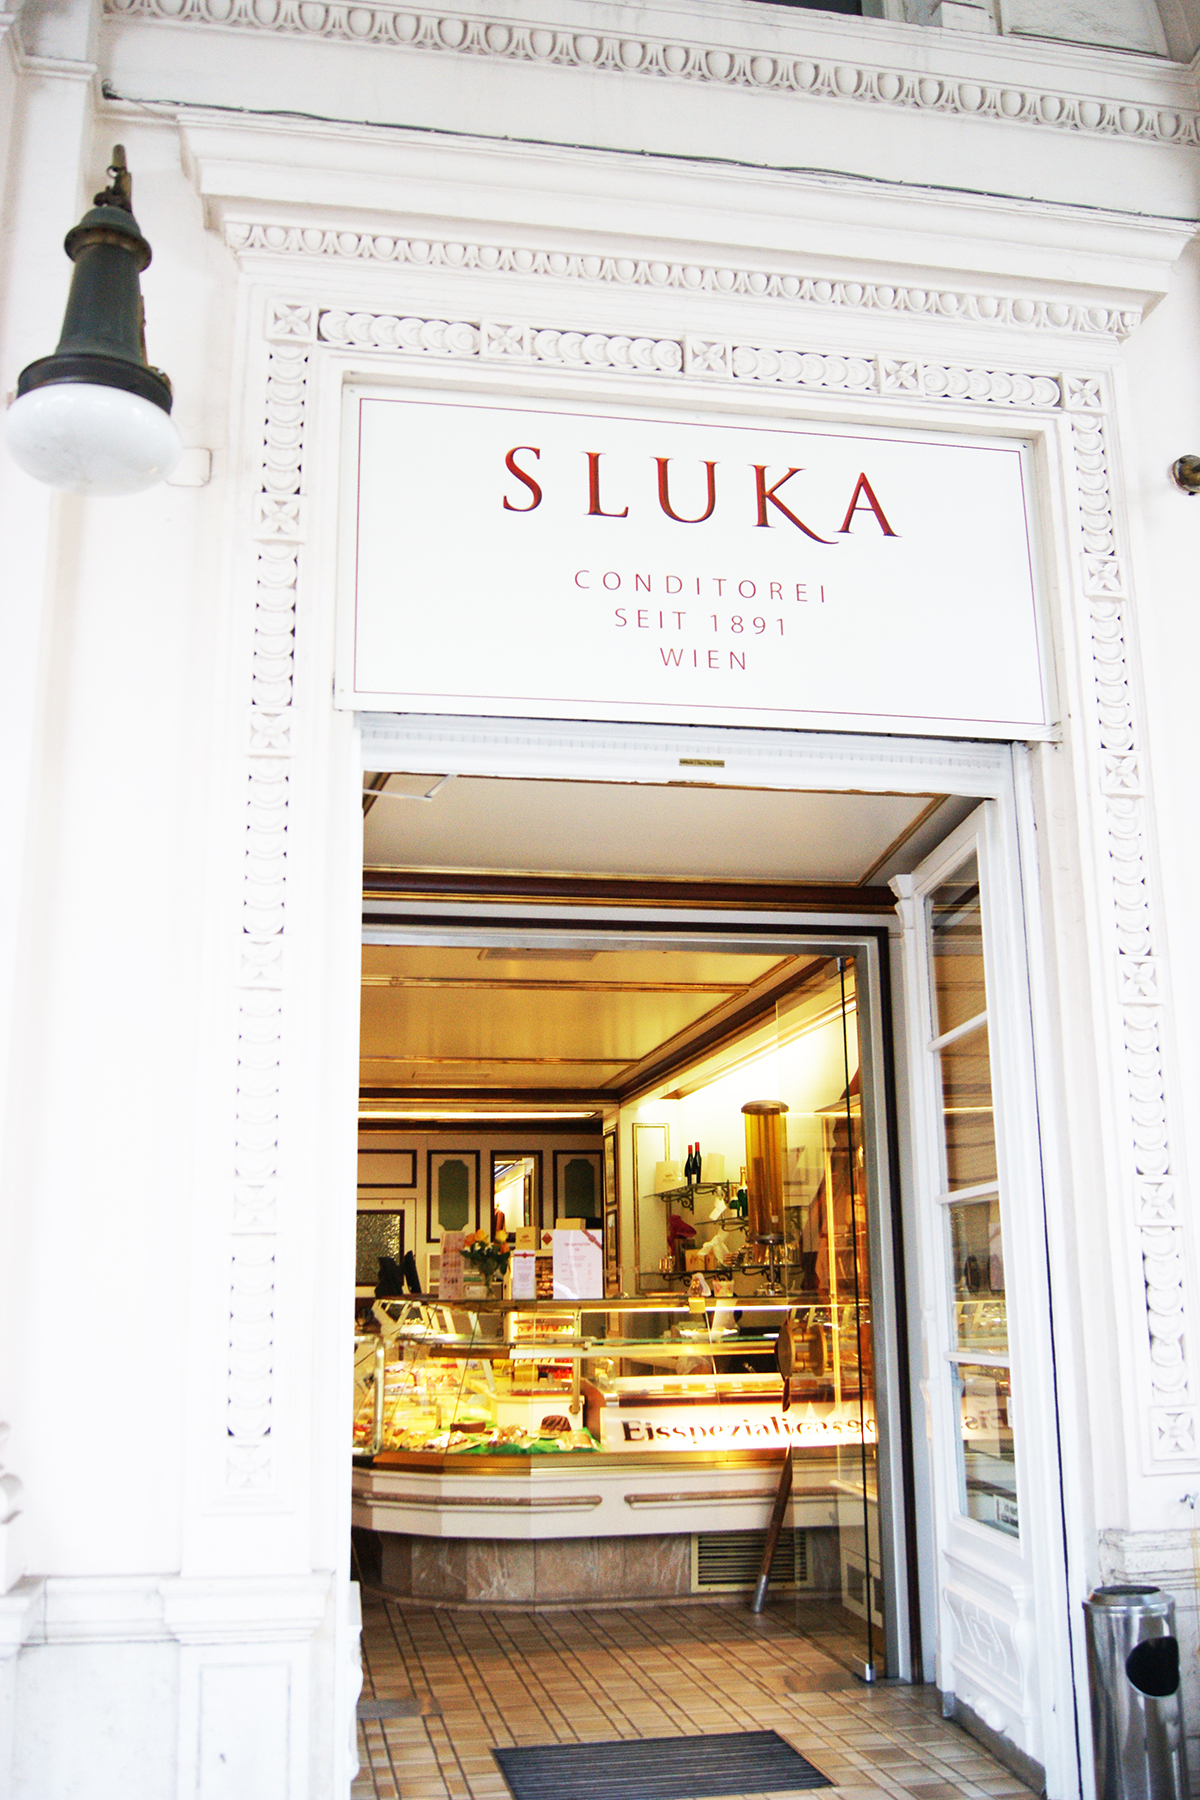 Sluka pastries and cafe in Vienna